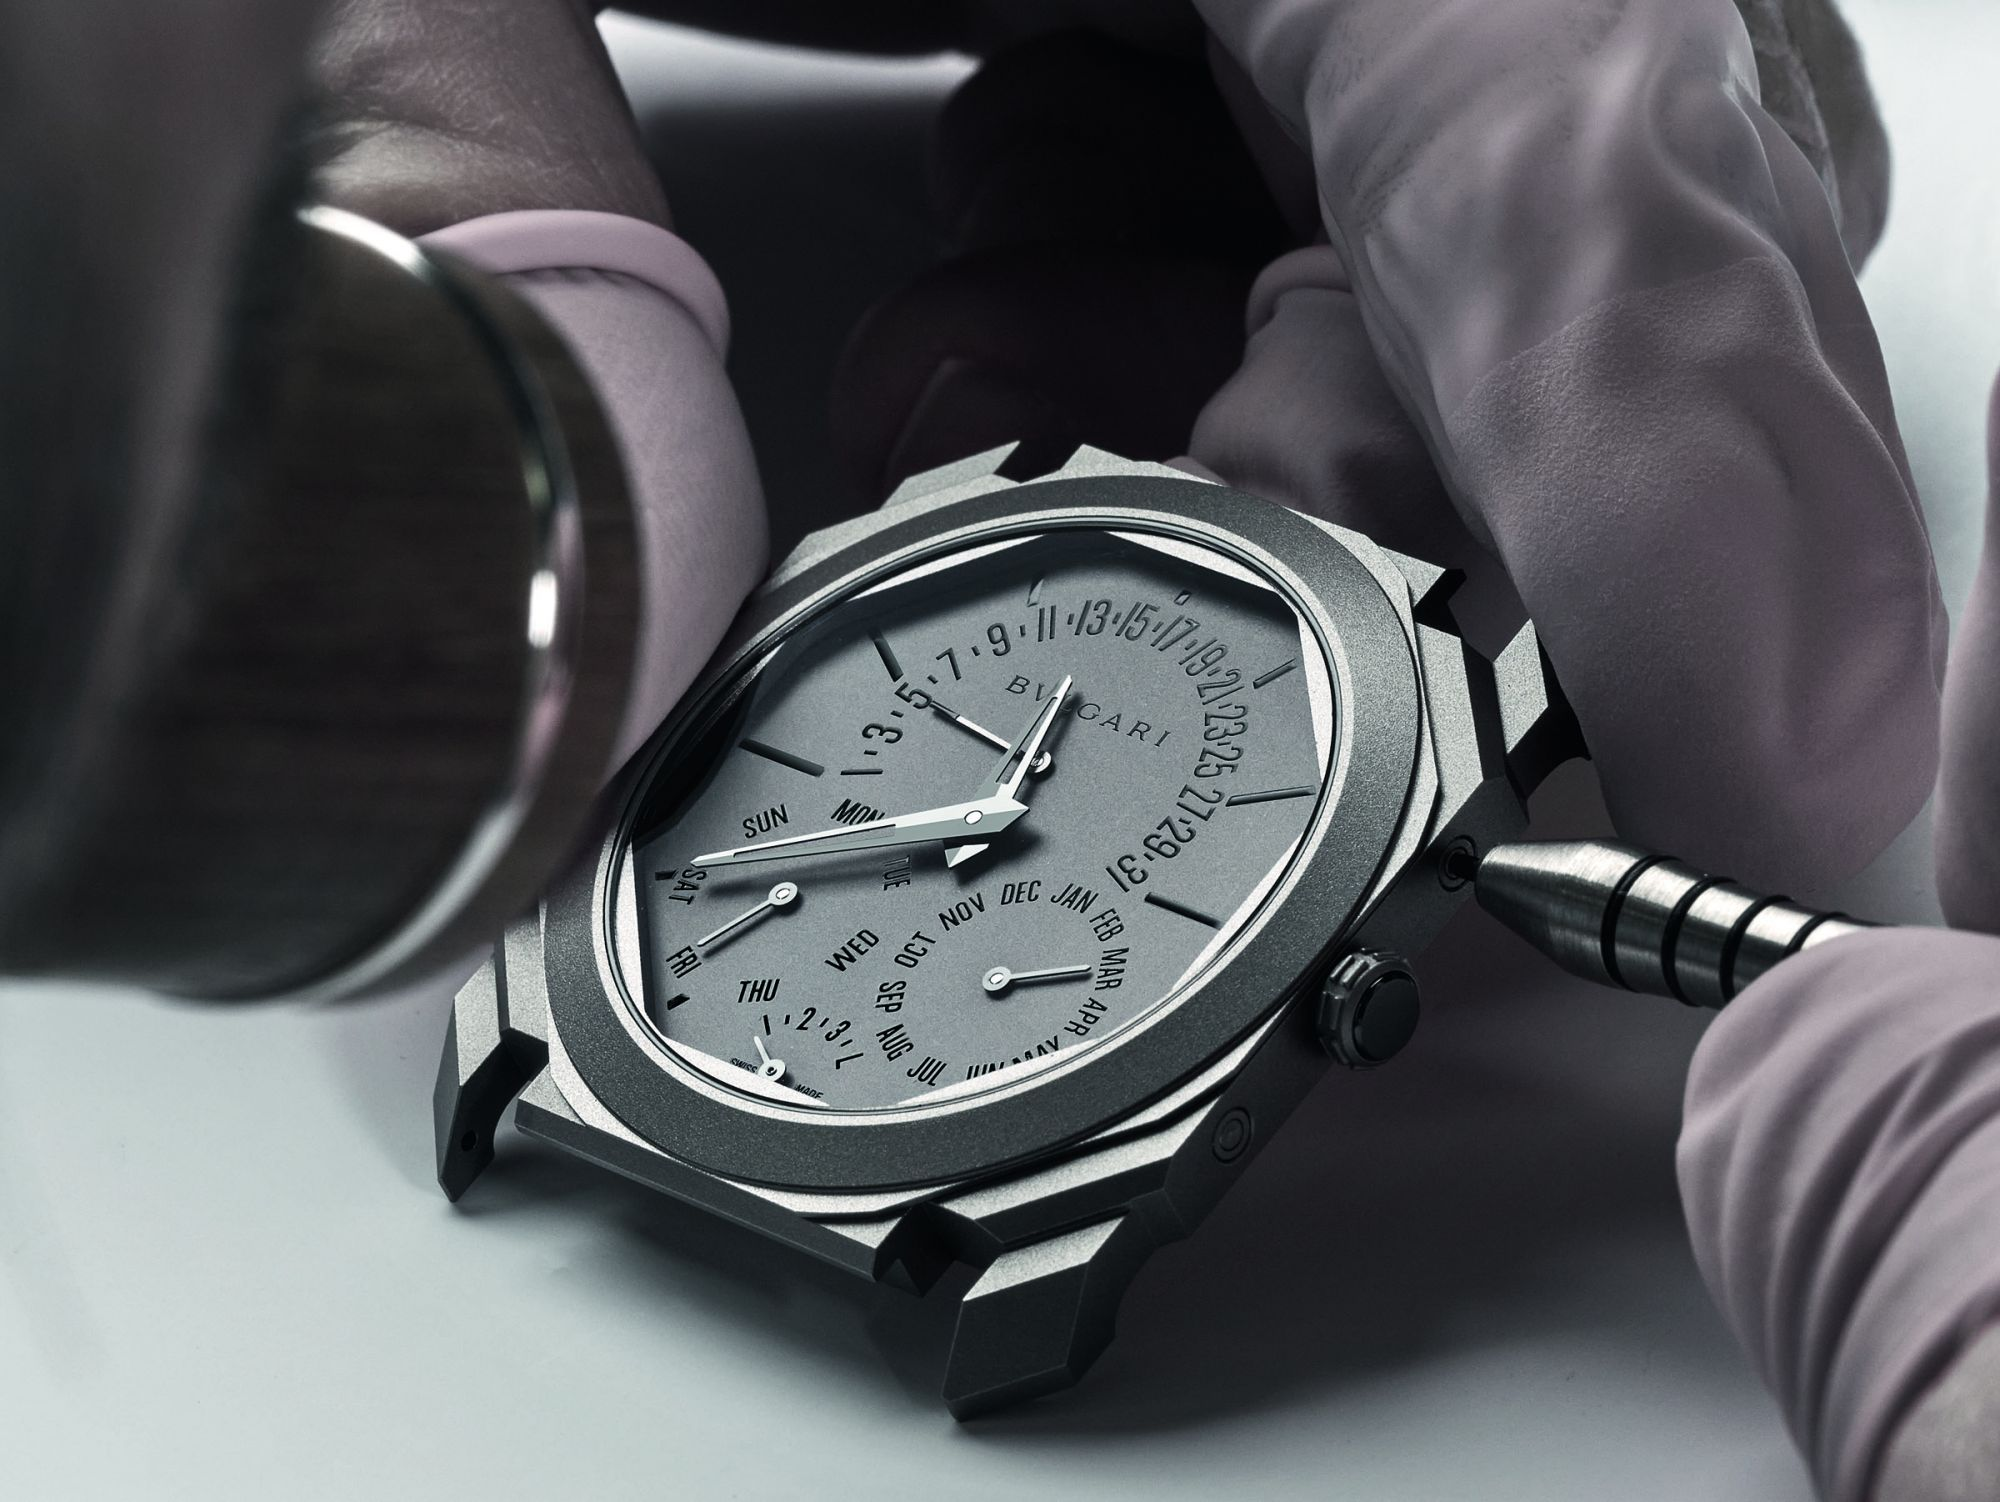 Watches & Wonders 2021: The Most Eye-Catching Perpetual Calendar Watches